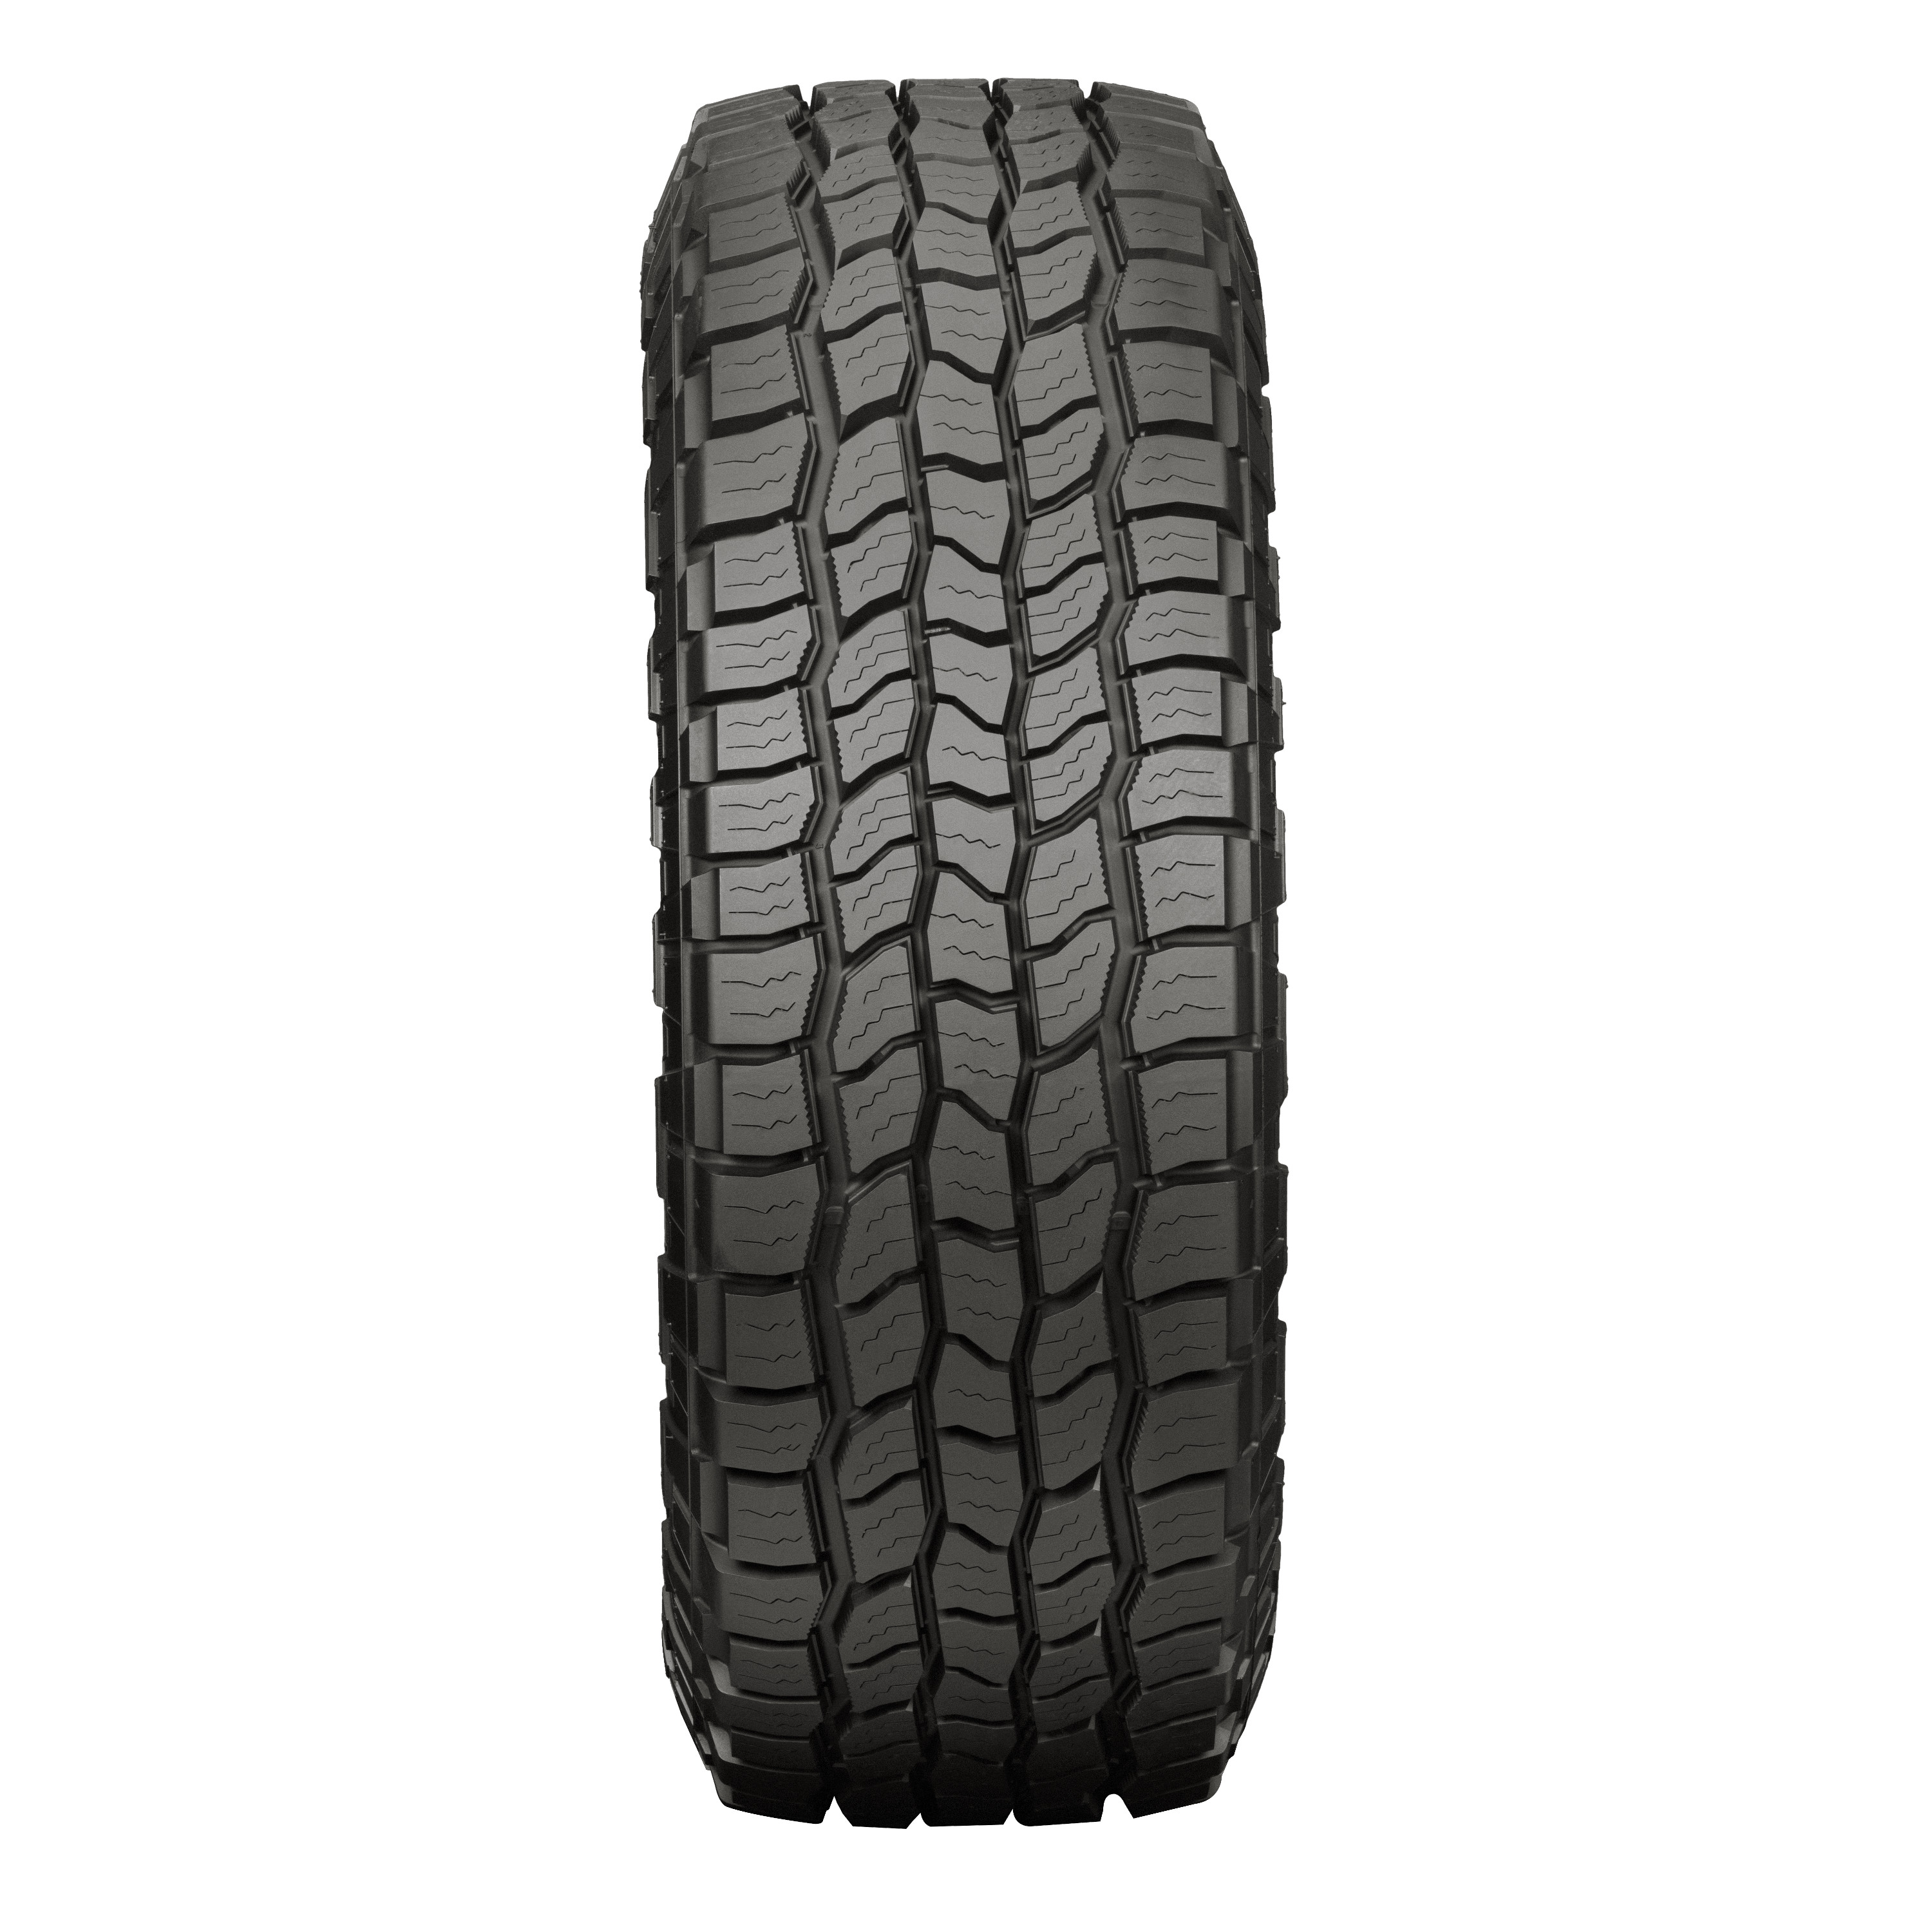 COOPER Discoverer AT3 XLT LT295//75R16 128//125R RWL 10 Ply Quantity of 1